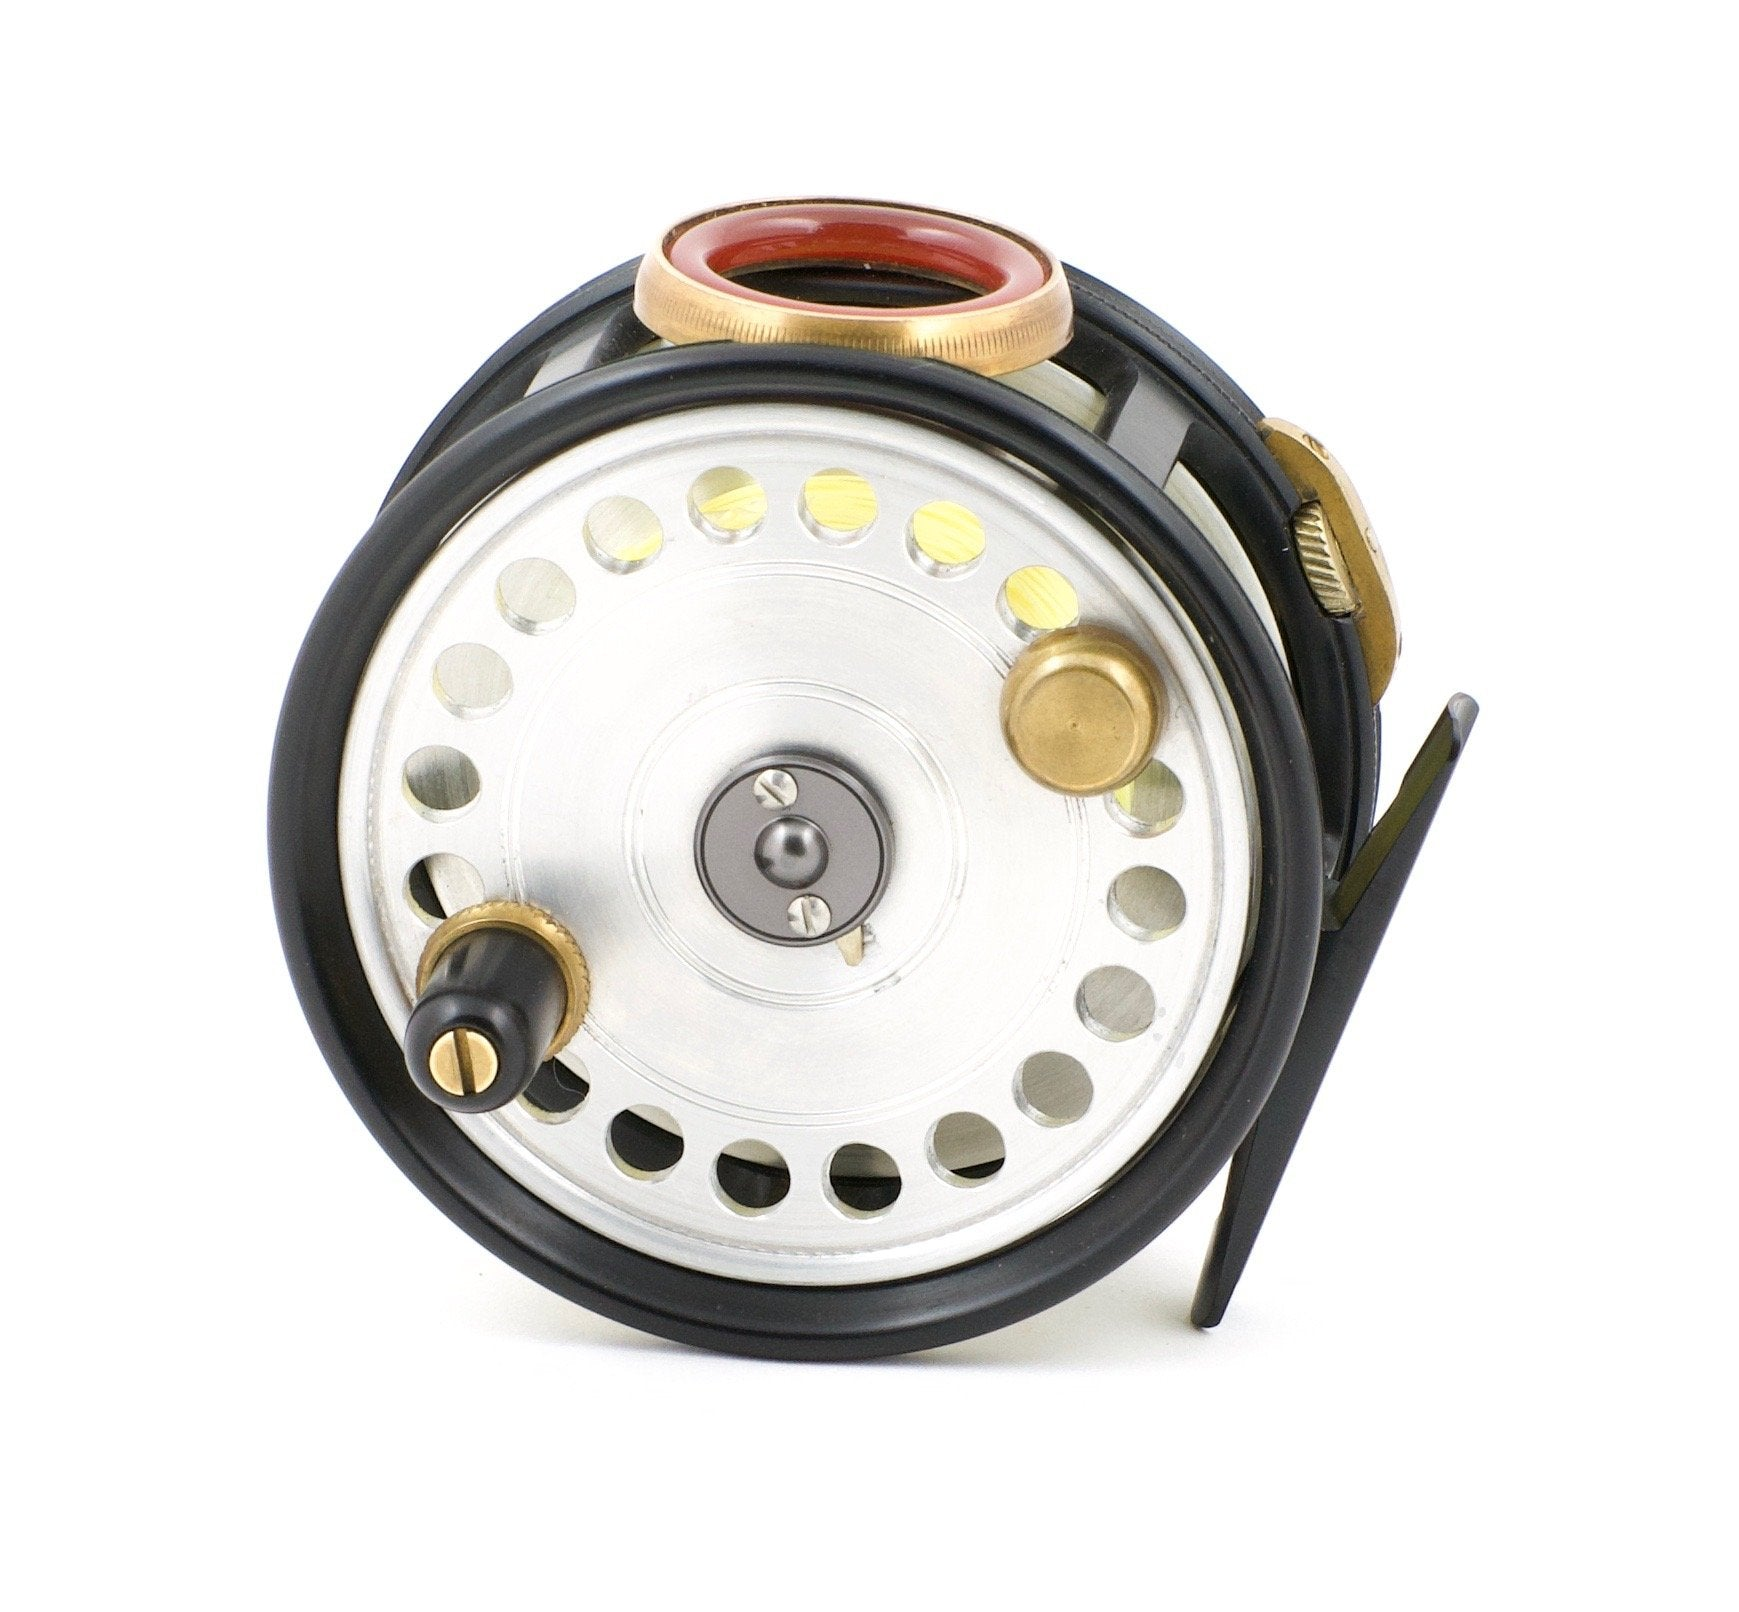 "Henshaw, Chris - 3 3/4"" St. George-style Fly Reel"